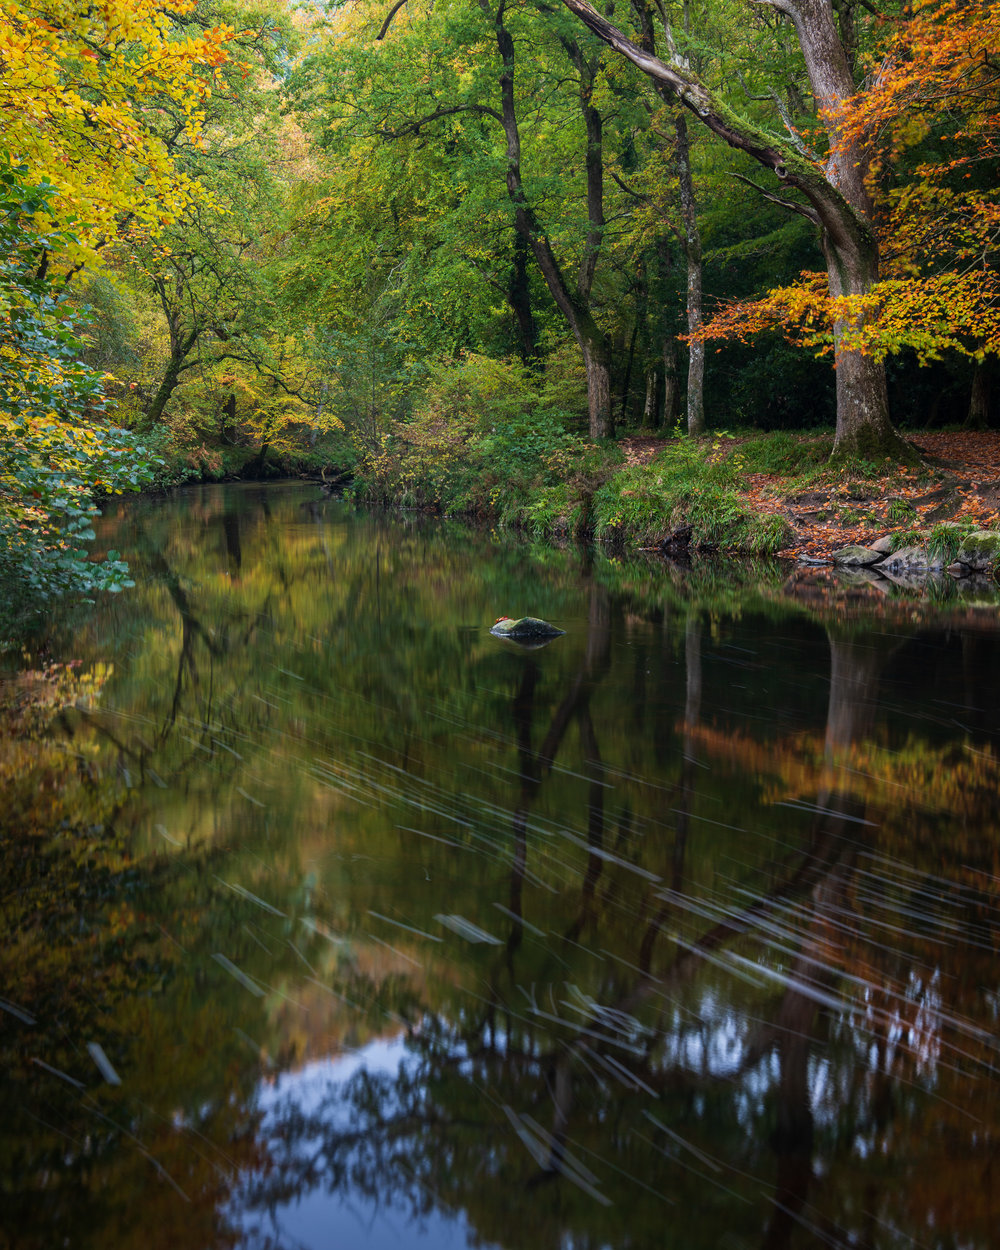 Autumn at the River Teign, Dartmoor, Devon